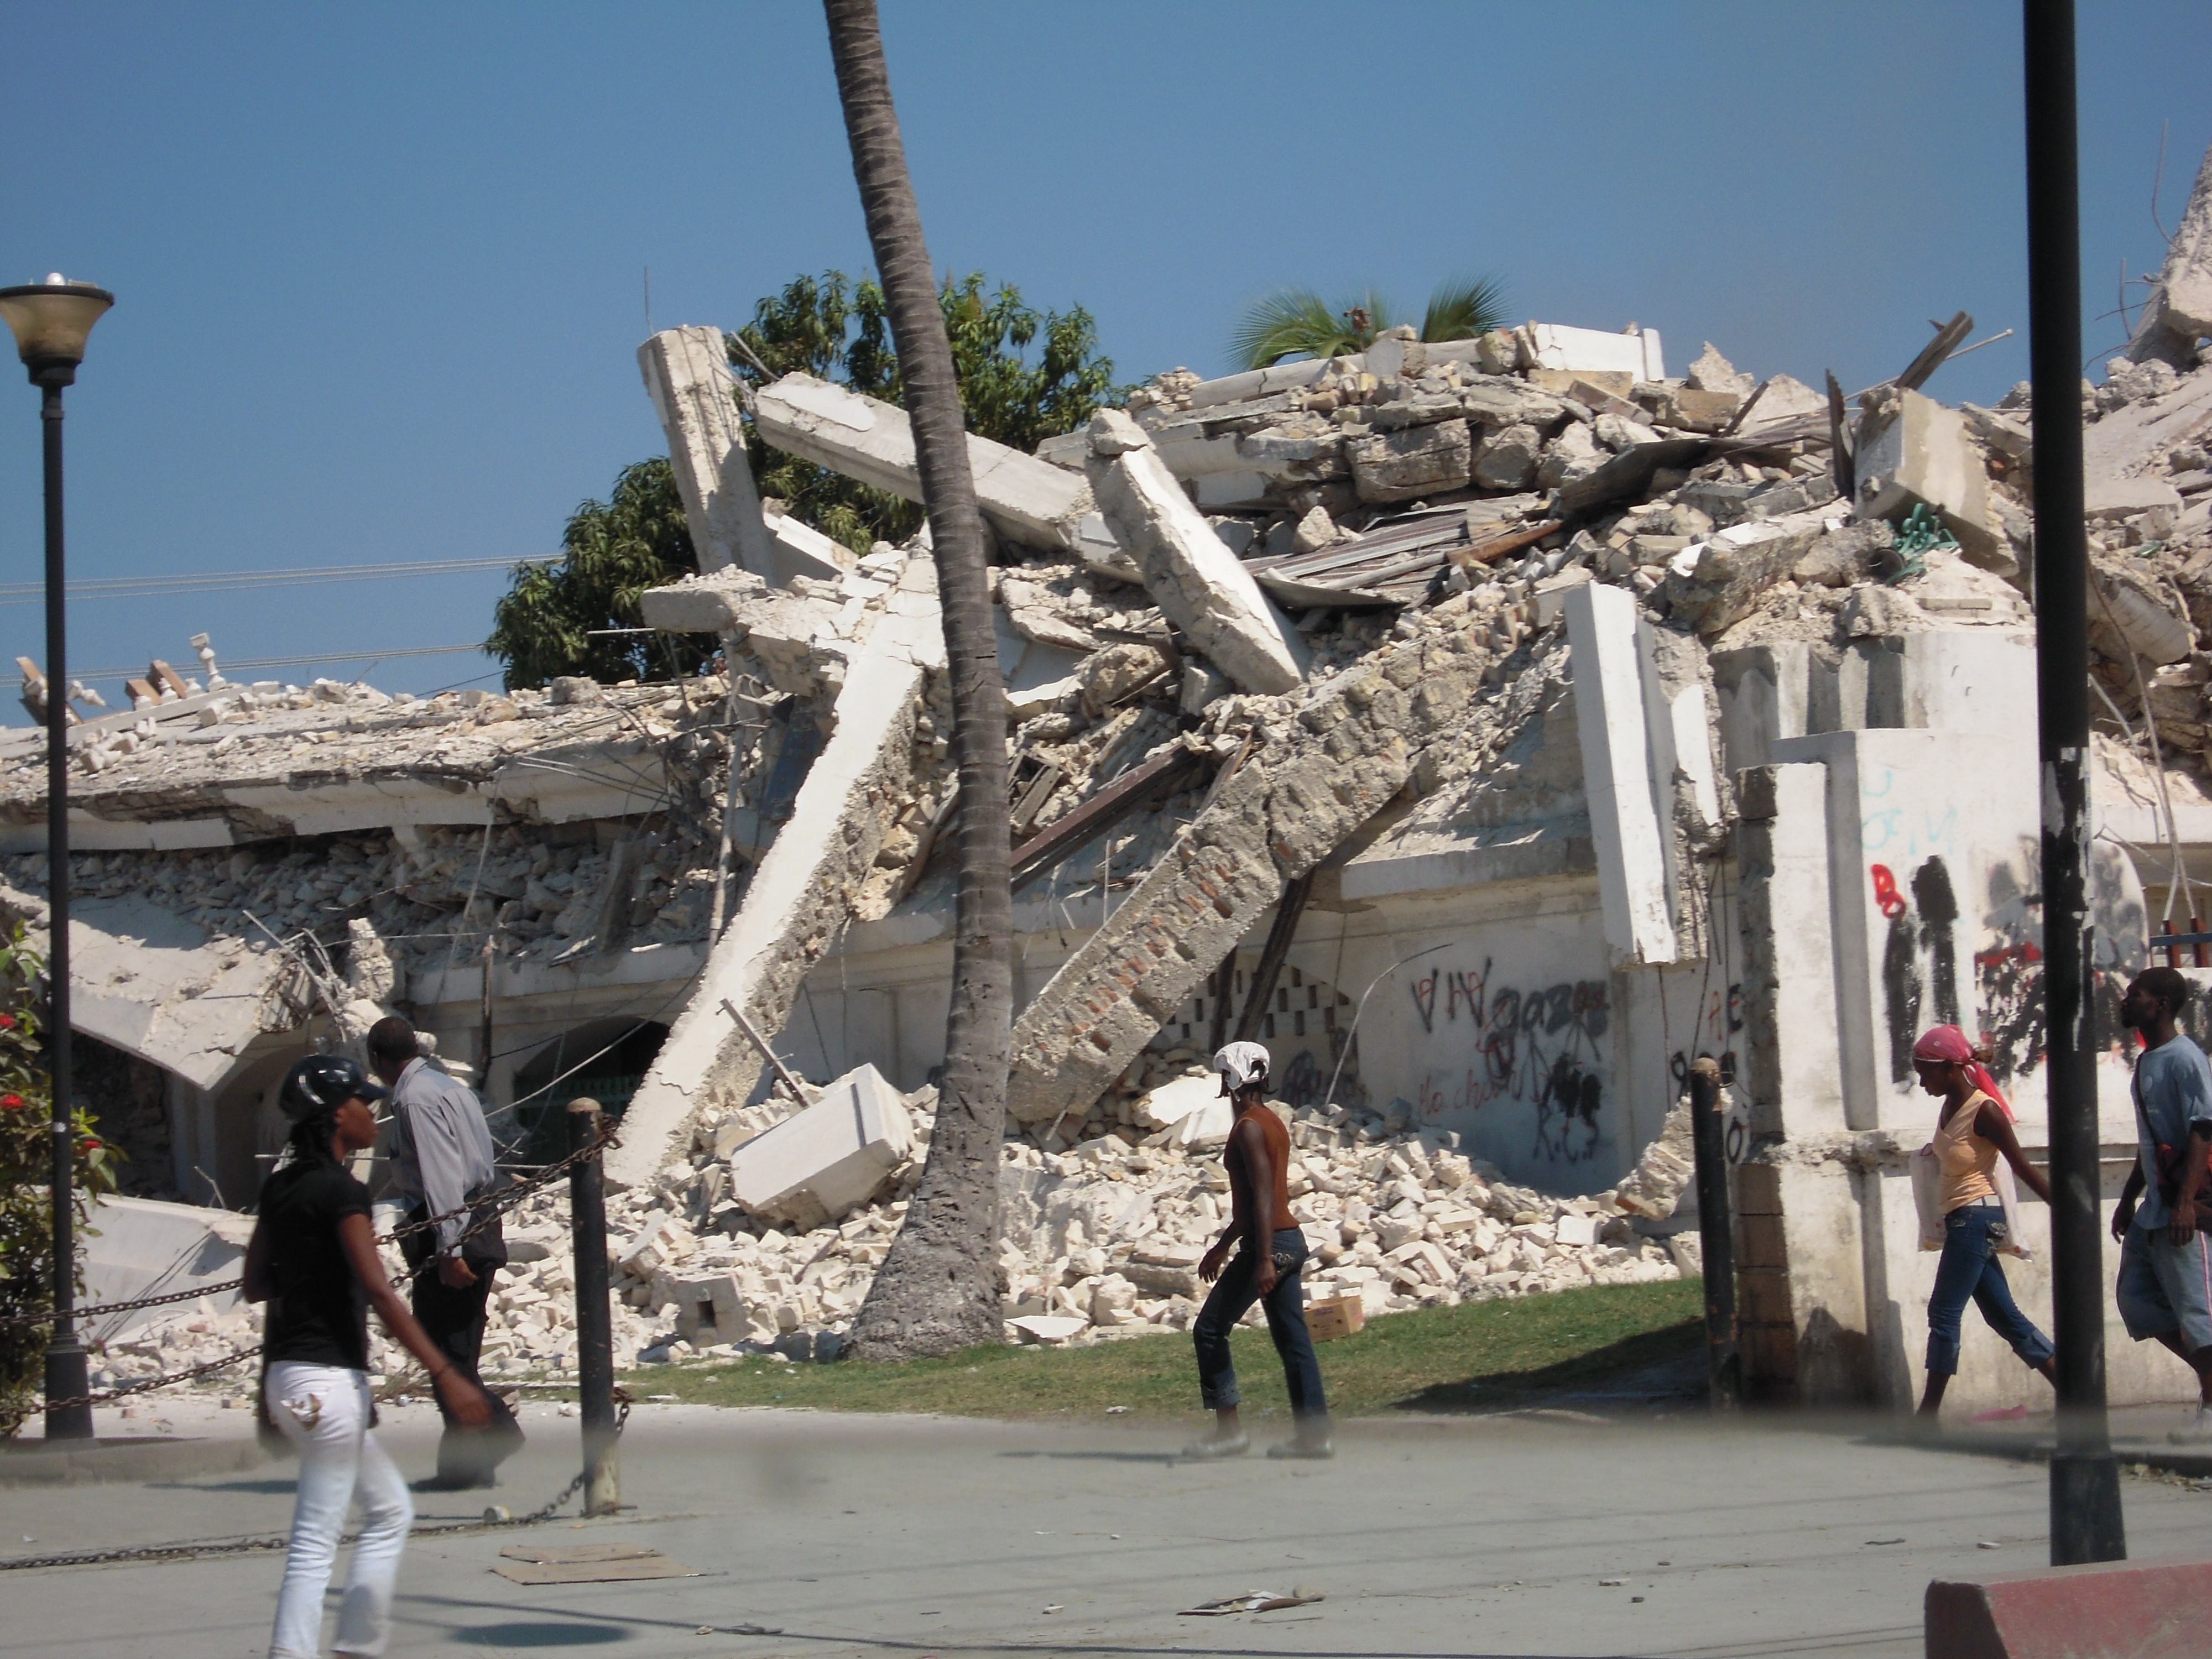 Earthquake damage in Port au Prince, Haiti